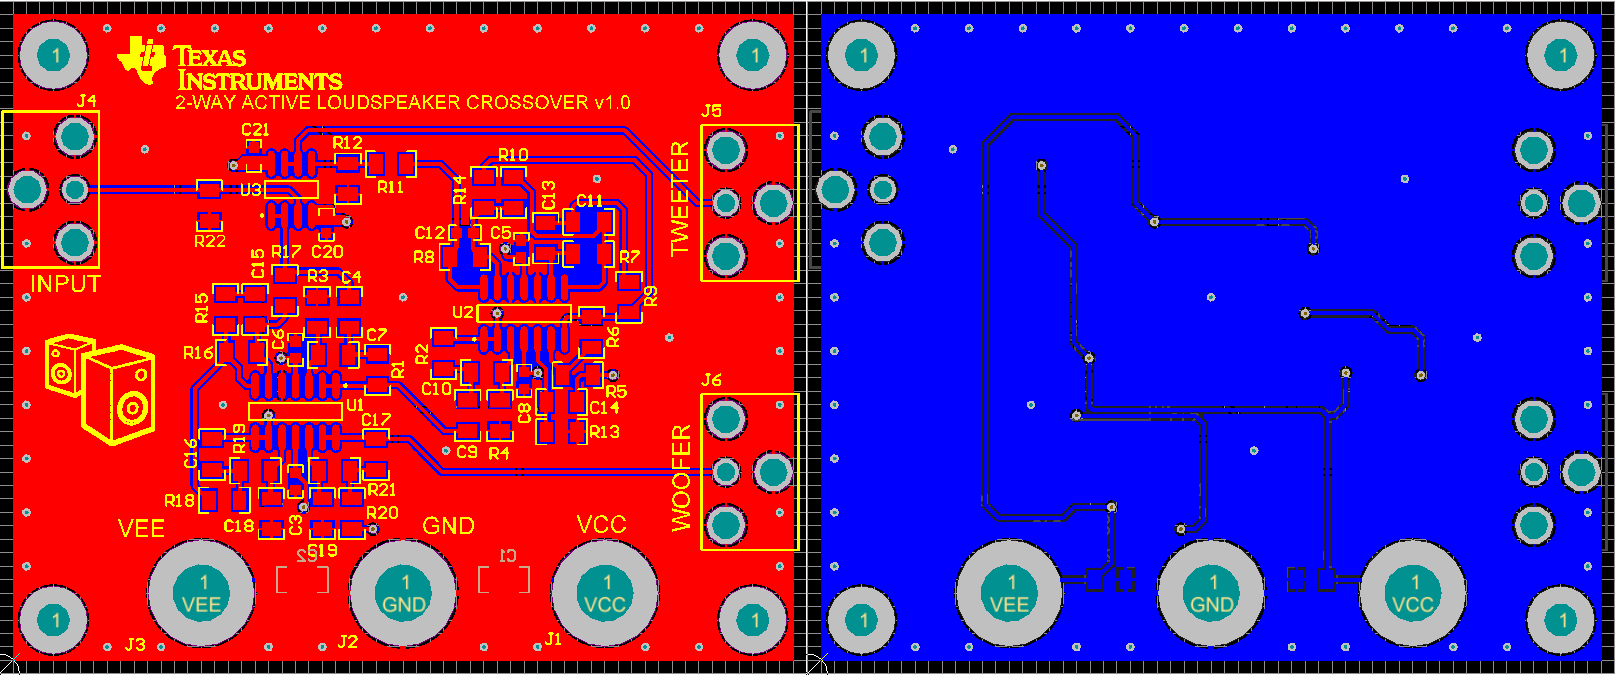 5 PCB Design The PCB schematic and bill of materials can be found in the Appendix. 5.